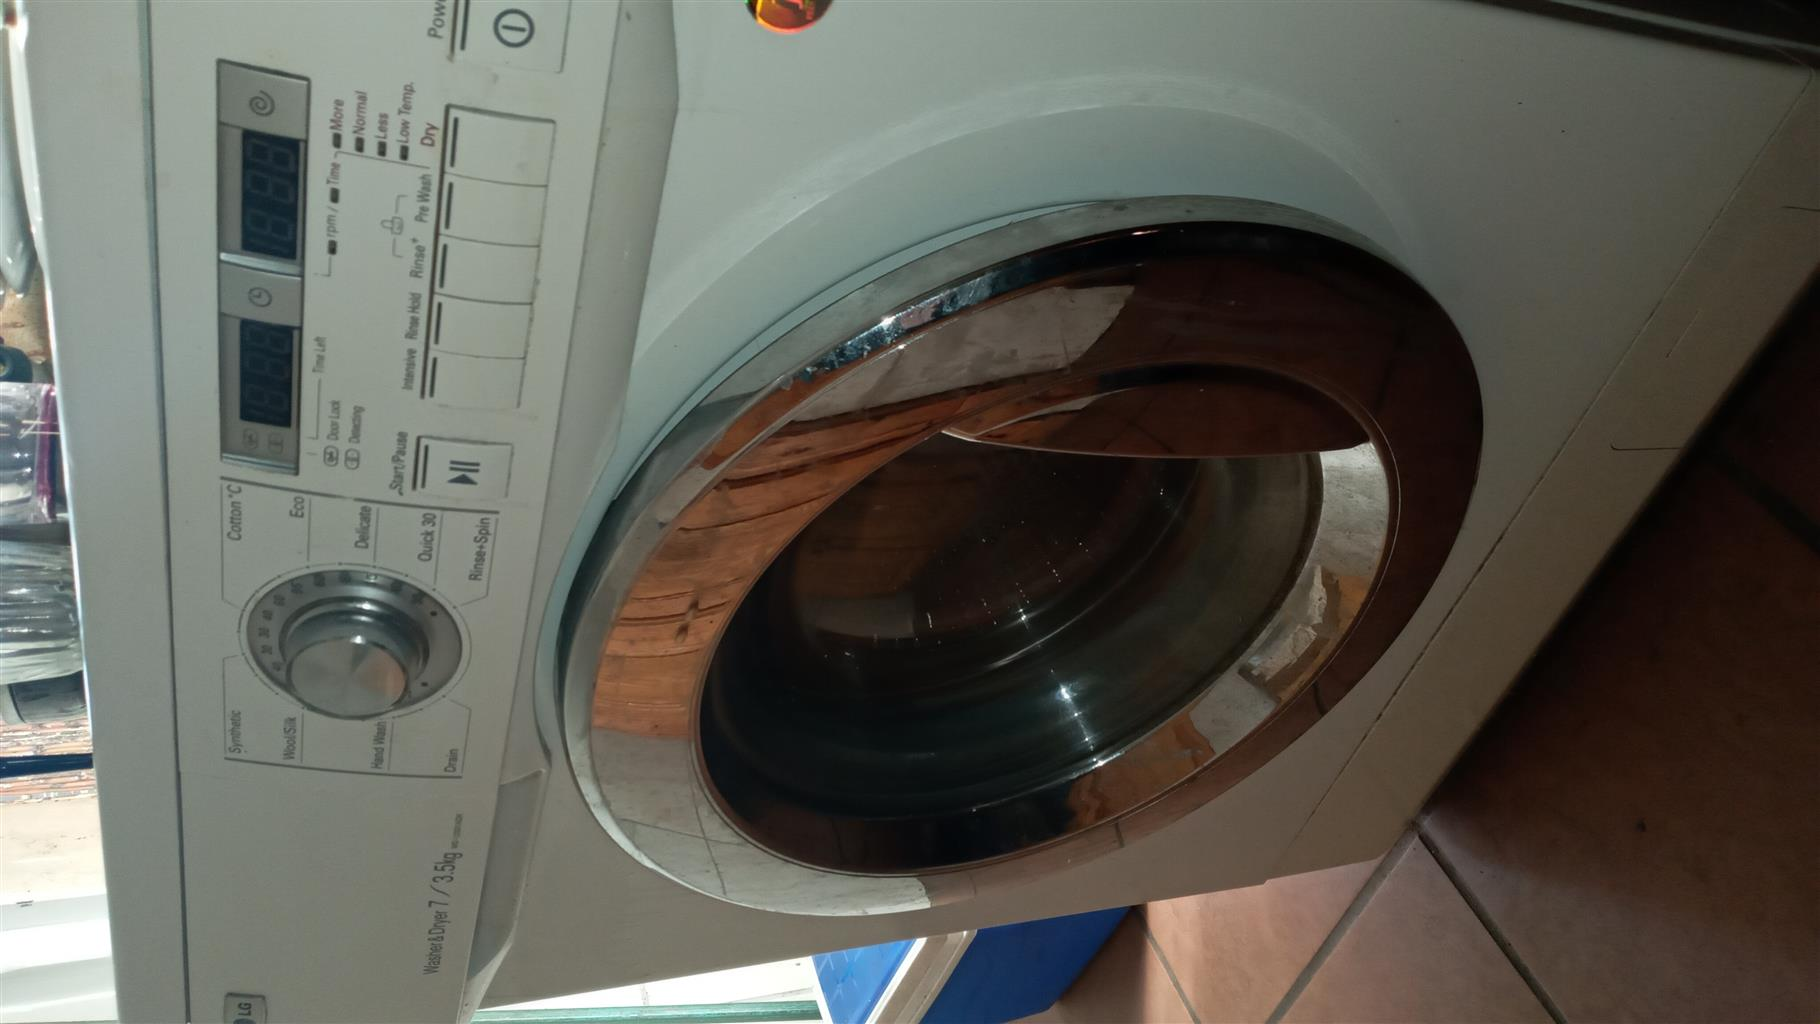 LG washer and dryer in one